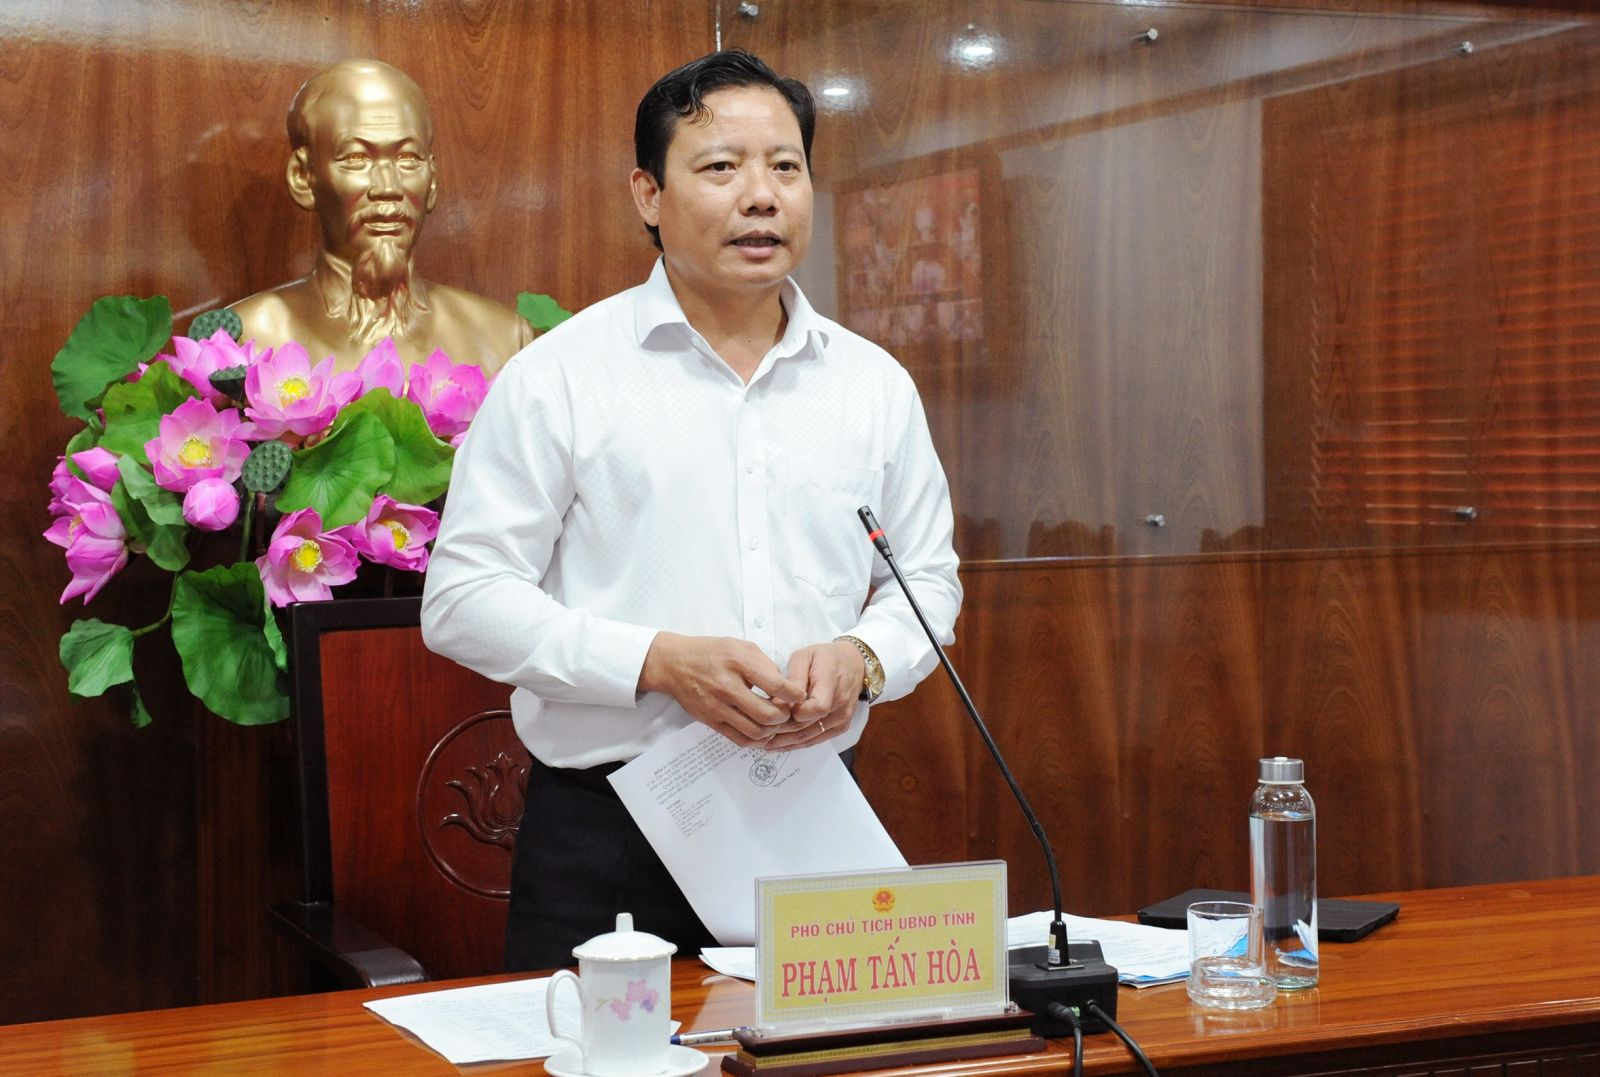 Vice Chairman of the Long An People's Committee - Pham Tan Hoa requests all levels and branches to be proactive, strengthen disease control, absolutely prevent epidemics from occurring in the province